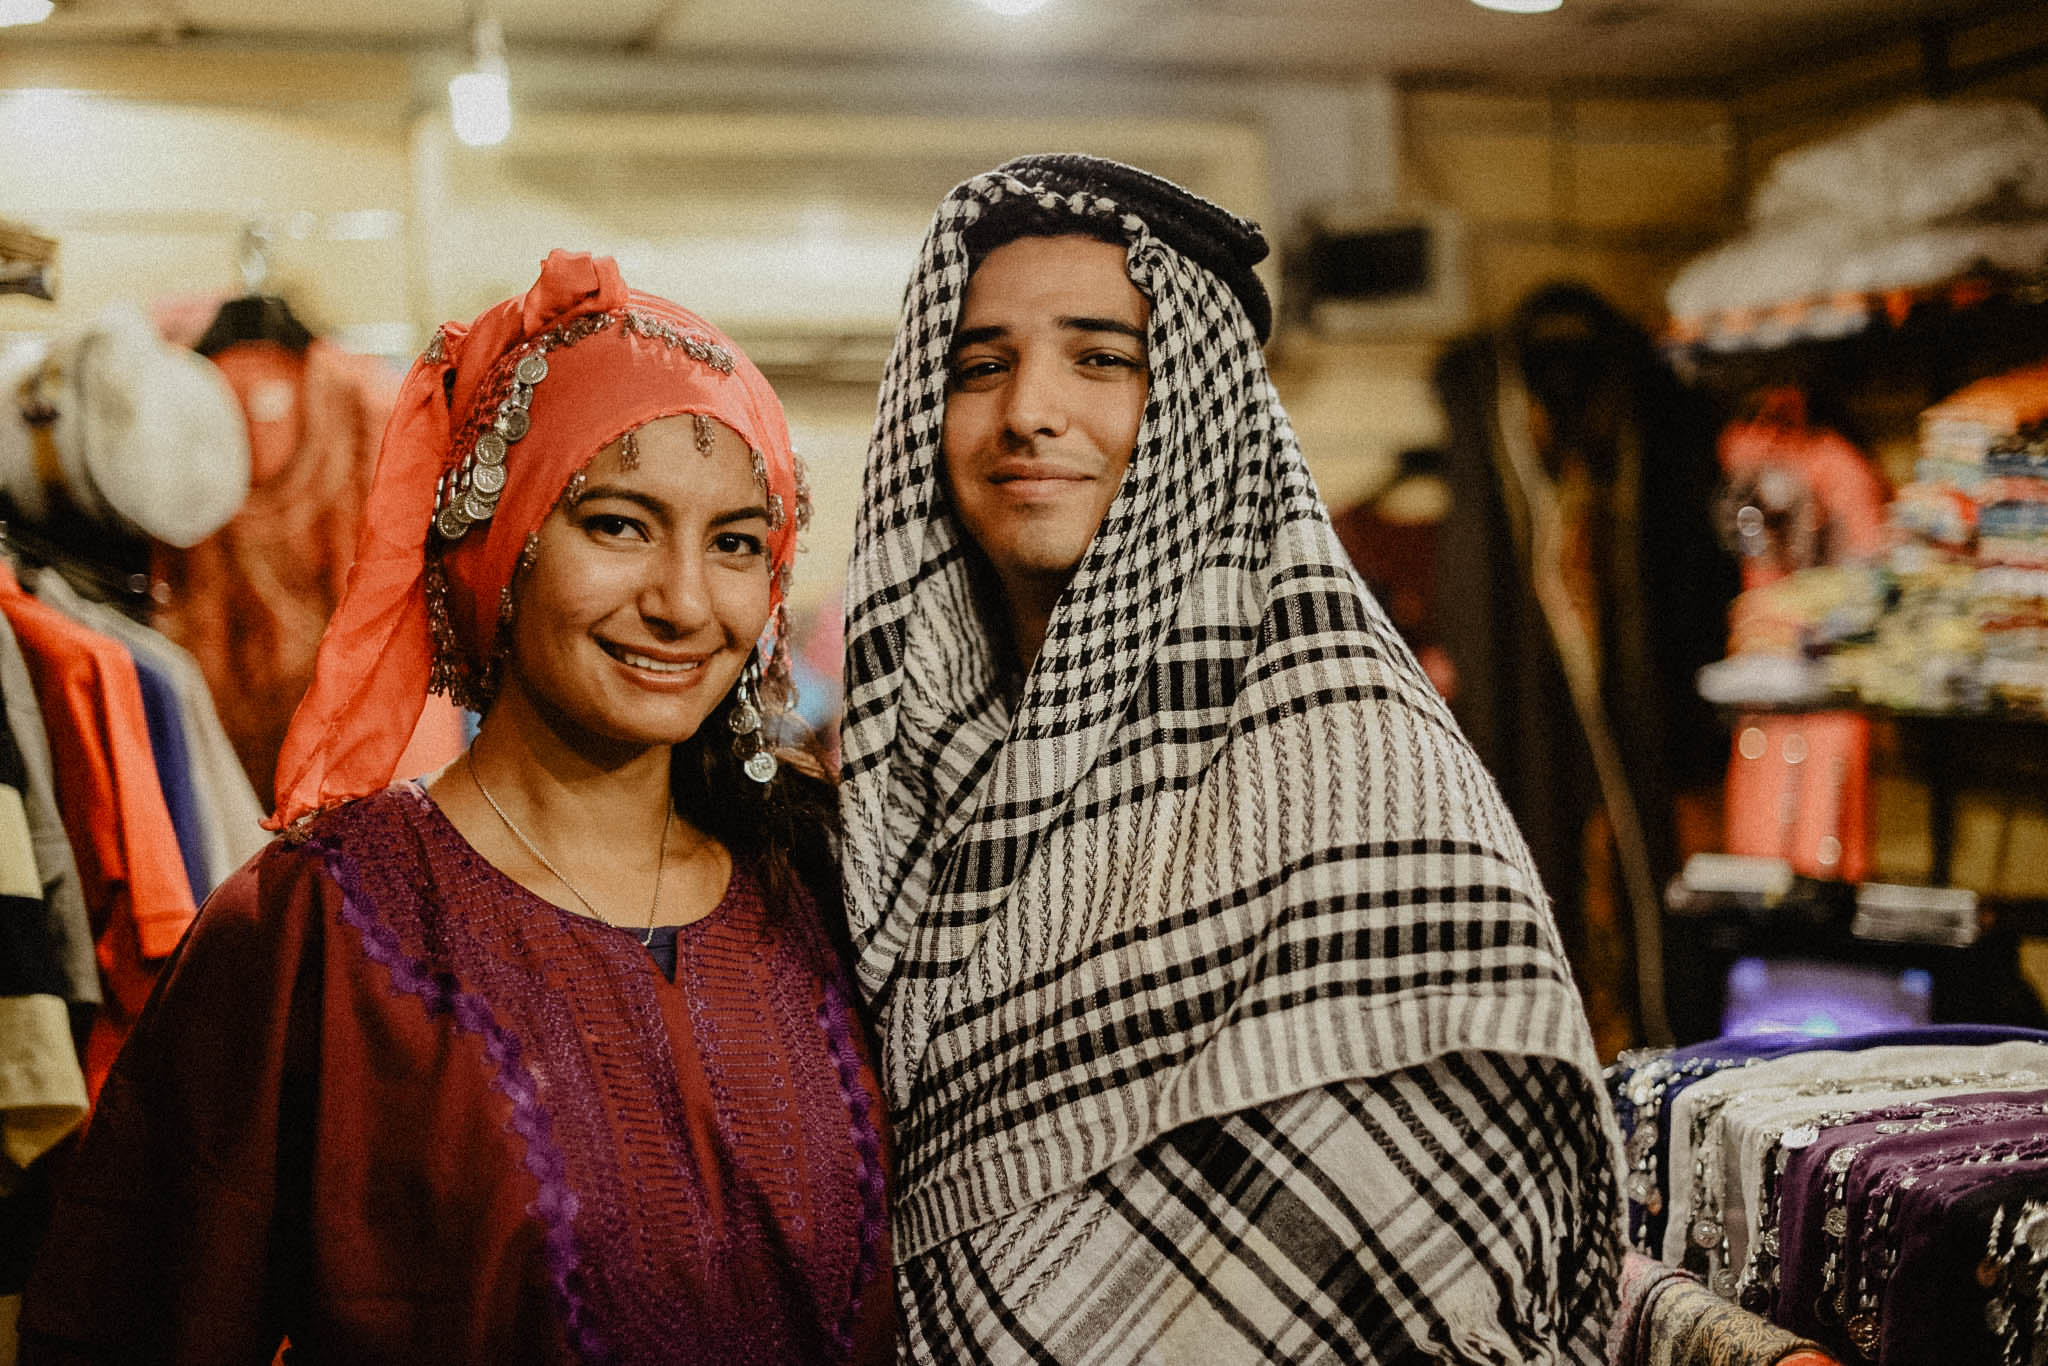 Nile River Cruise: - In this picture we are trying out some traditional Egyptian clothing in preparation for our nile cruise.  We didn't end up going with these exact outfits but it was fun trying them on lol If you want to have a nice dinner and a show while cruising the nile, go for it but to be honest we were so jet lagged that it was hard to enjoy.  It was memorable though.